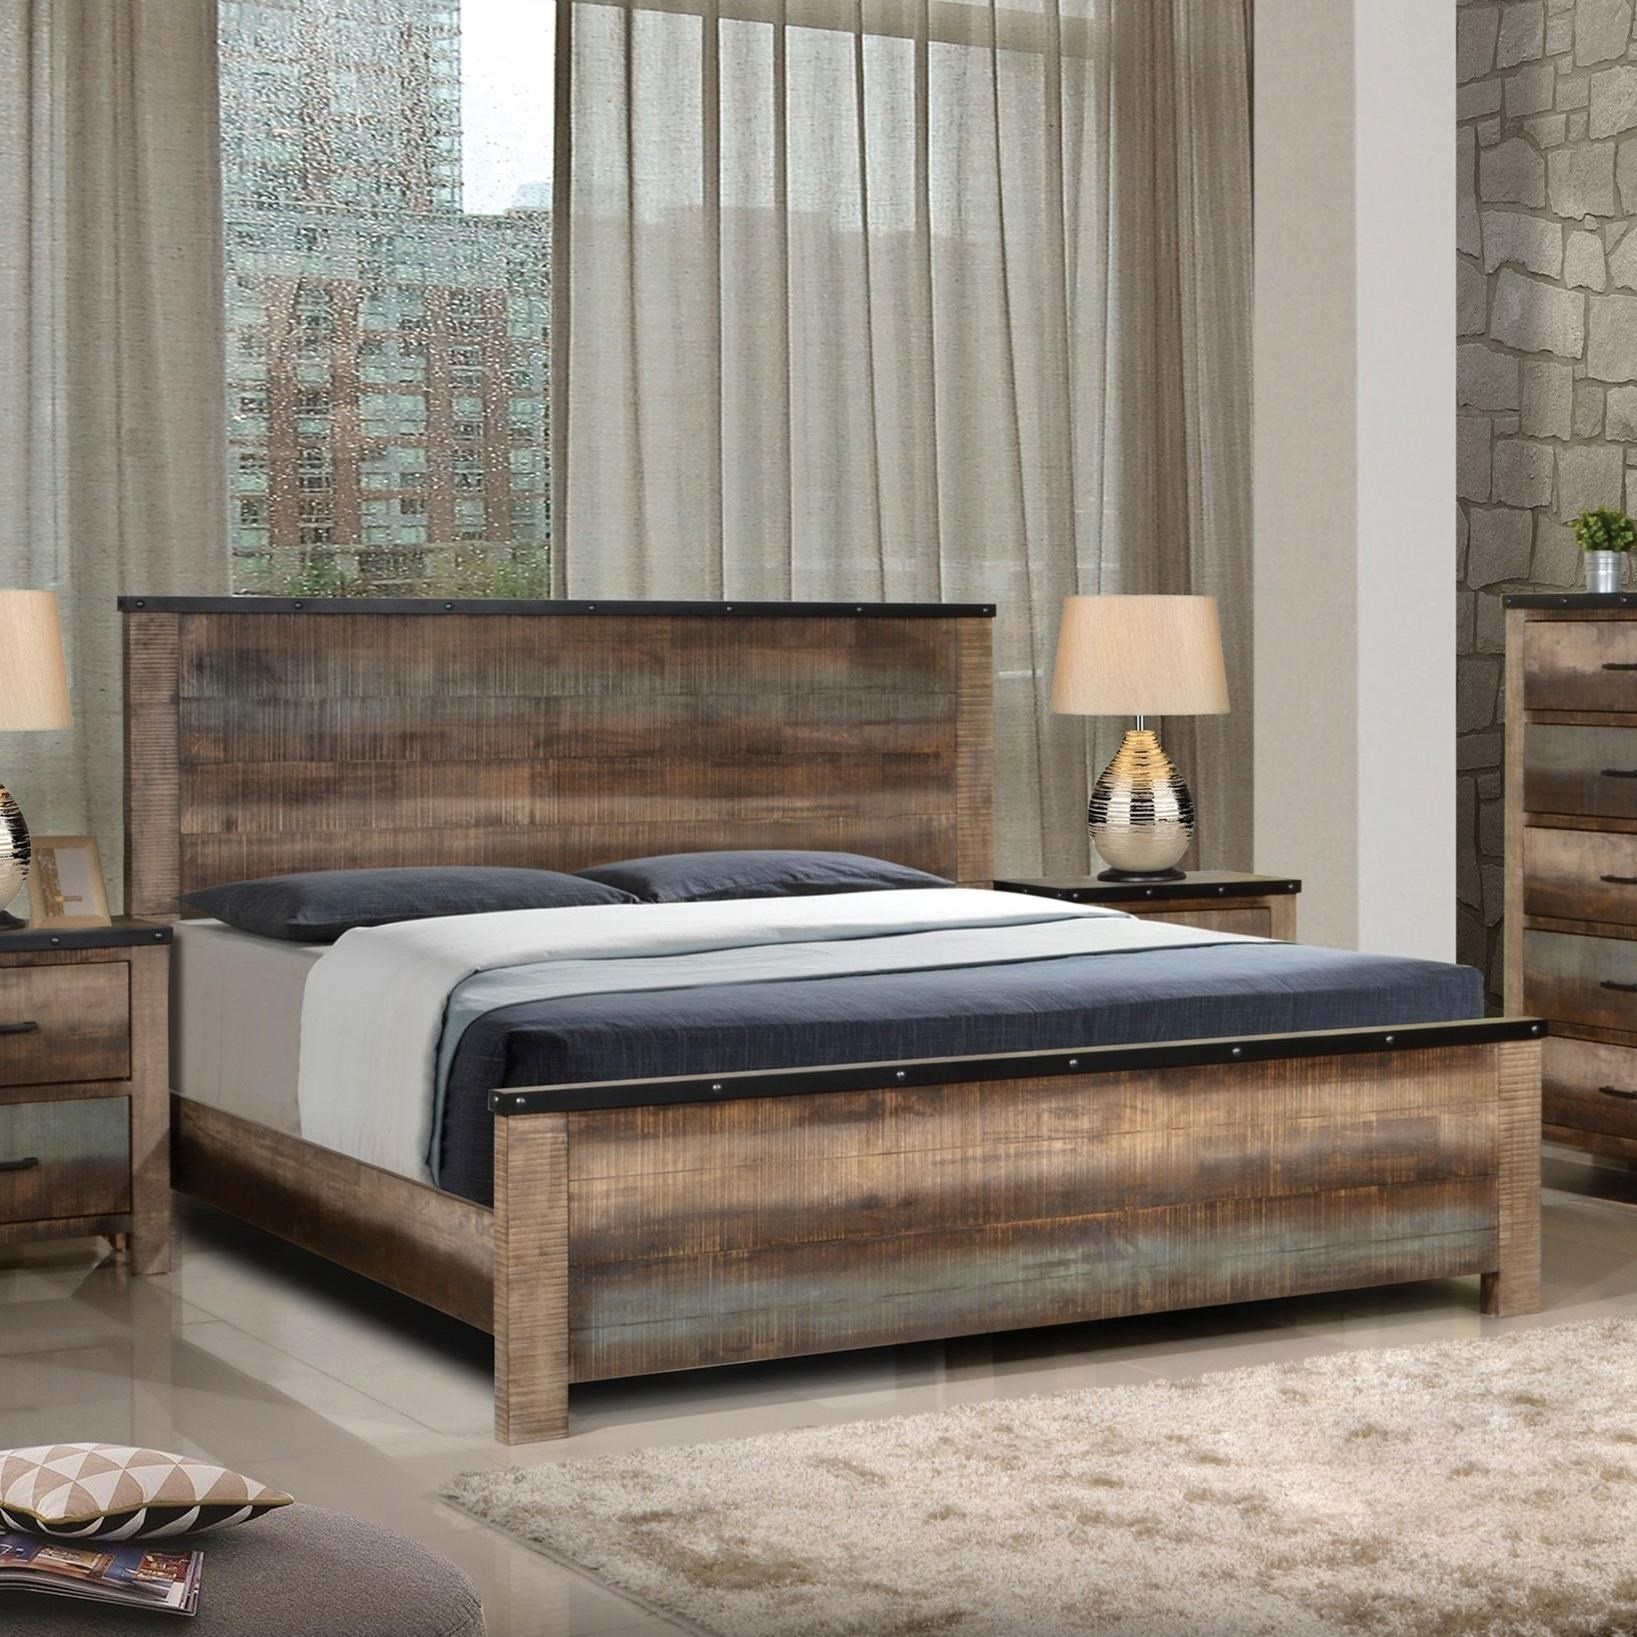 Coaster Sembene Rustic King Bed with Nailhead Accents